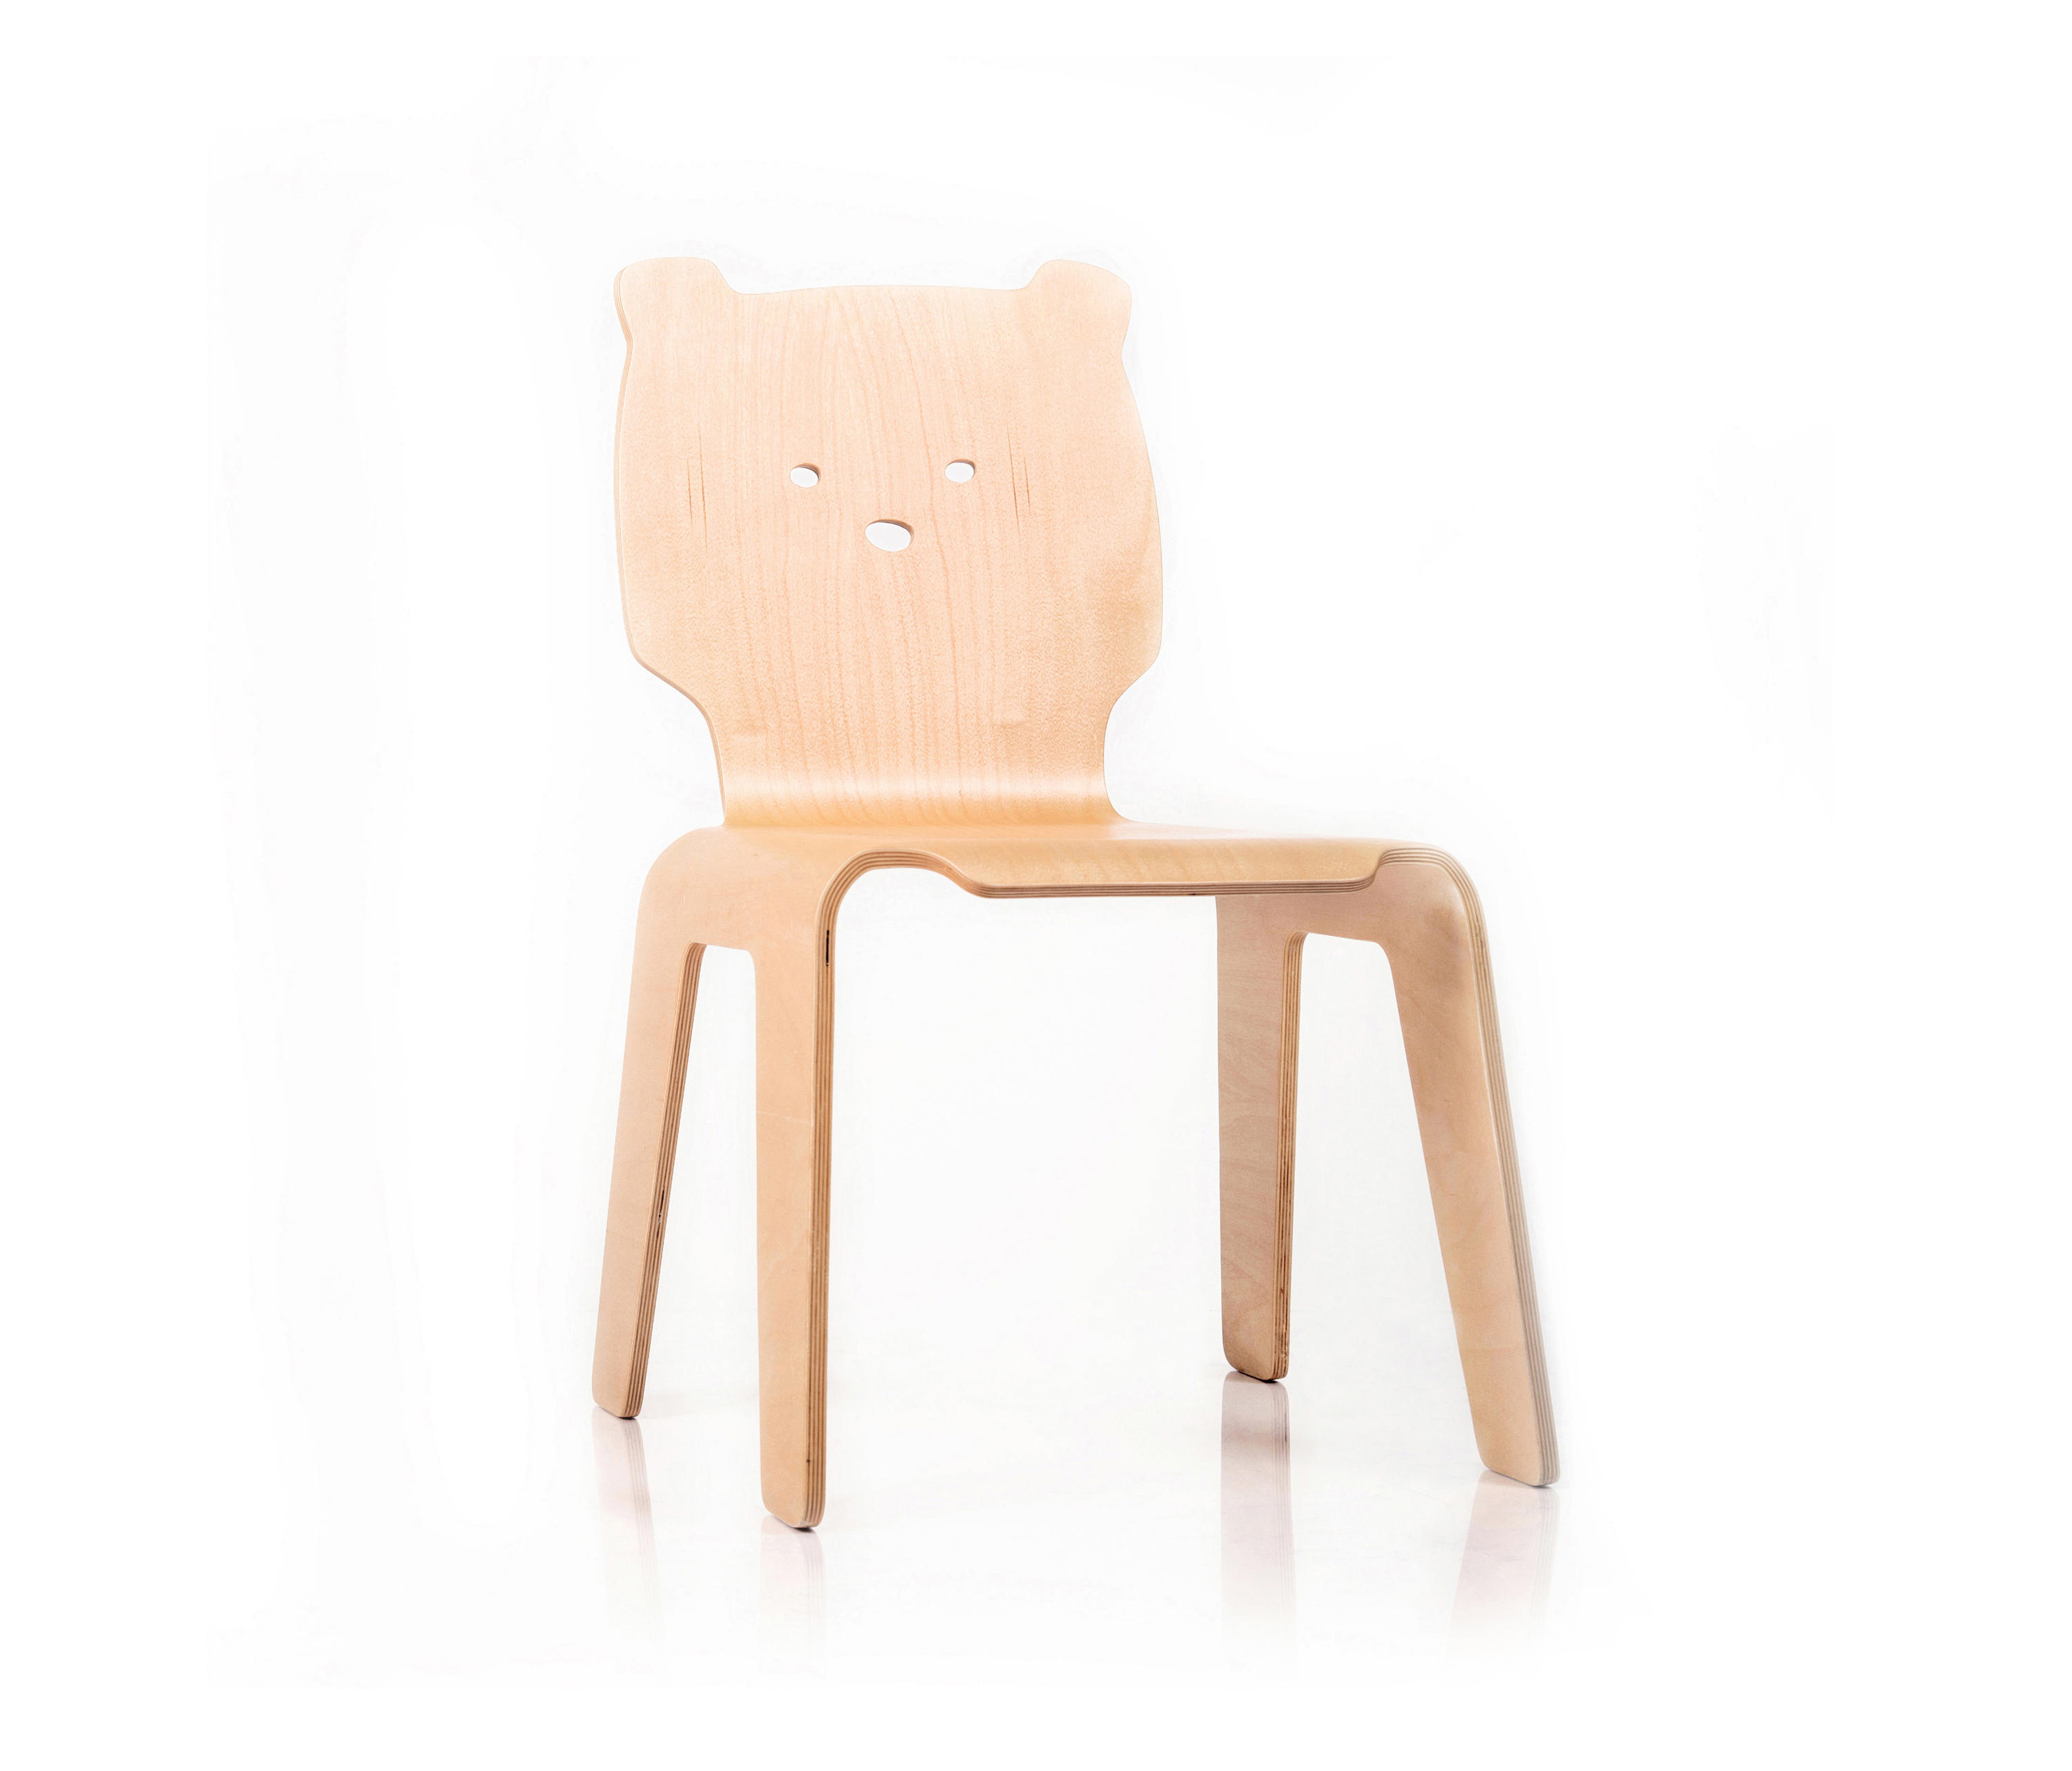 KIDS CHAIRS High quality designer KIDS CHAIRS